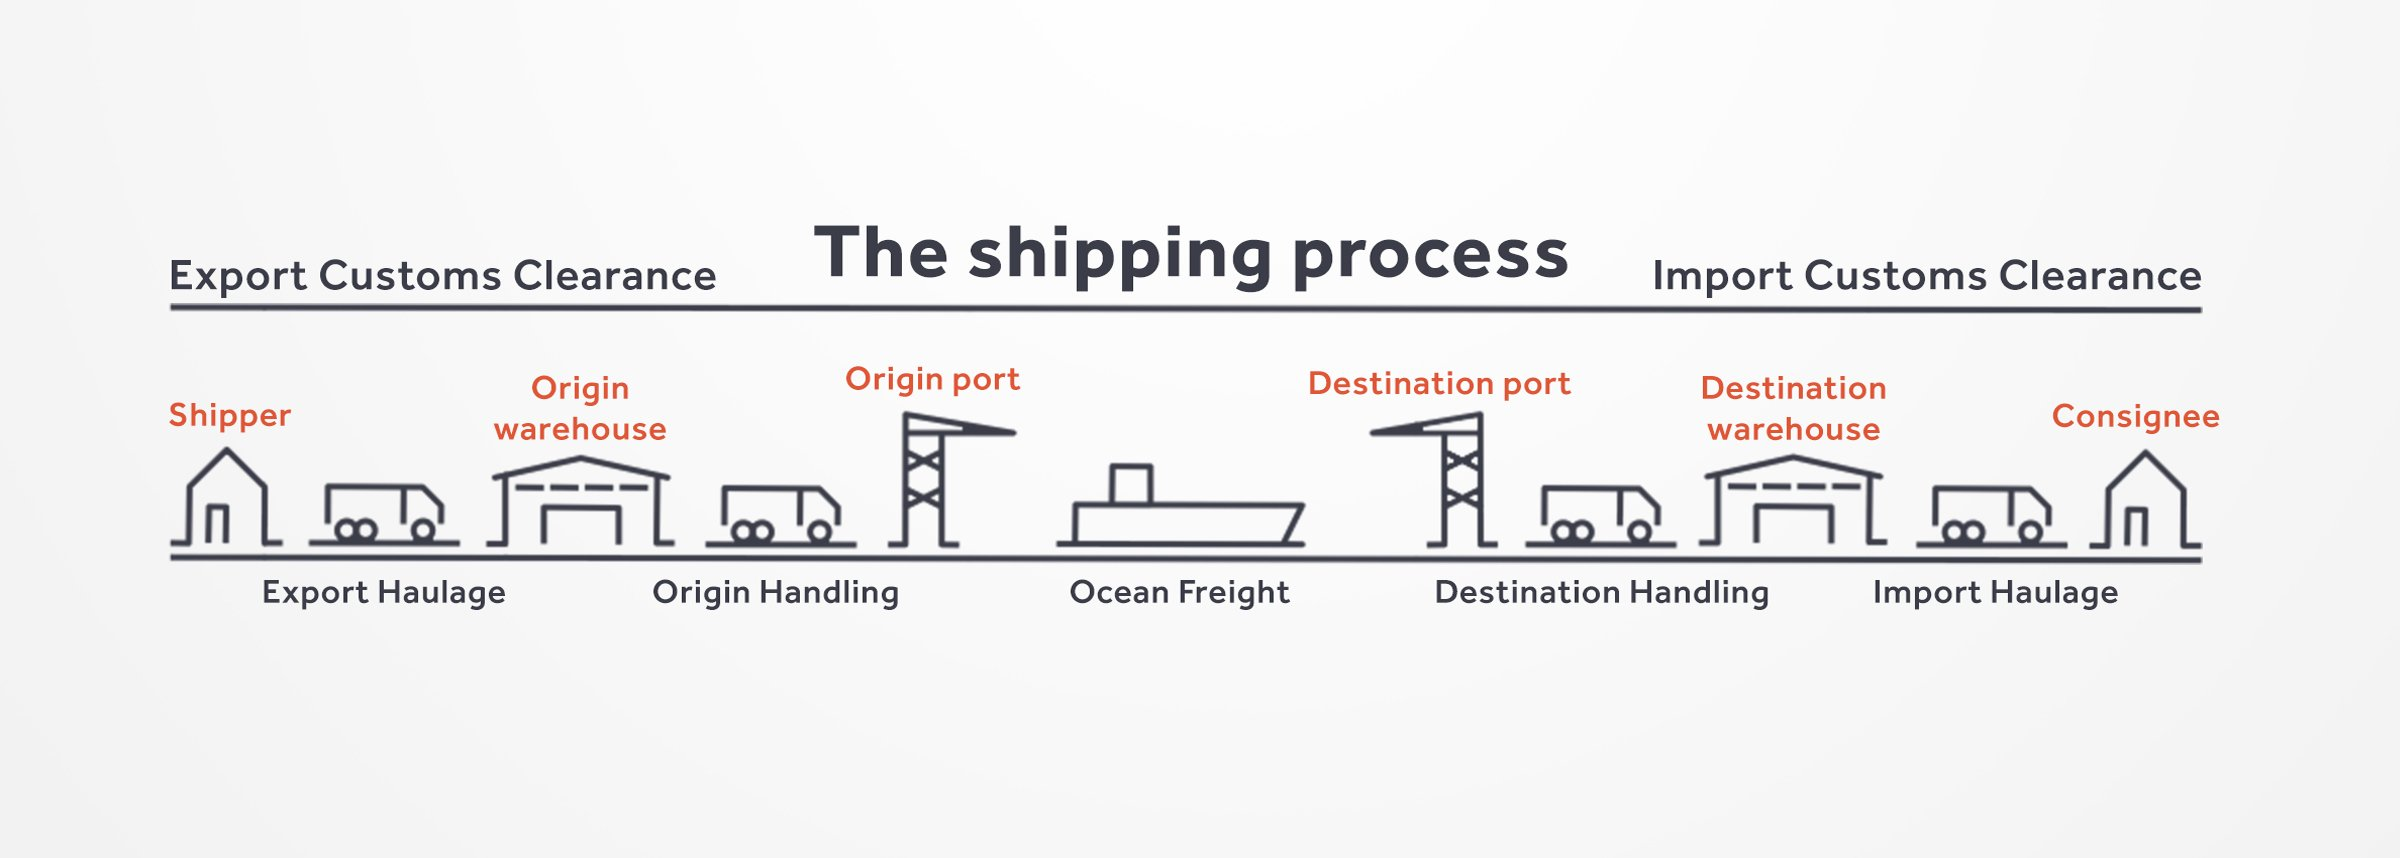 Illustration of the shipping process (7 steps)